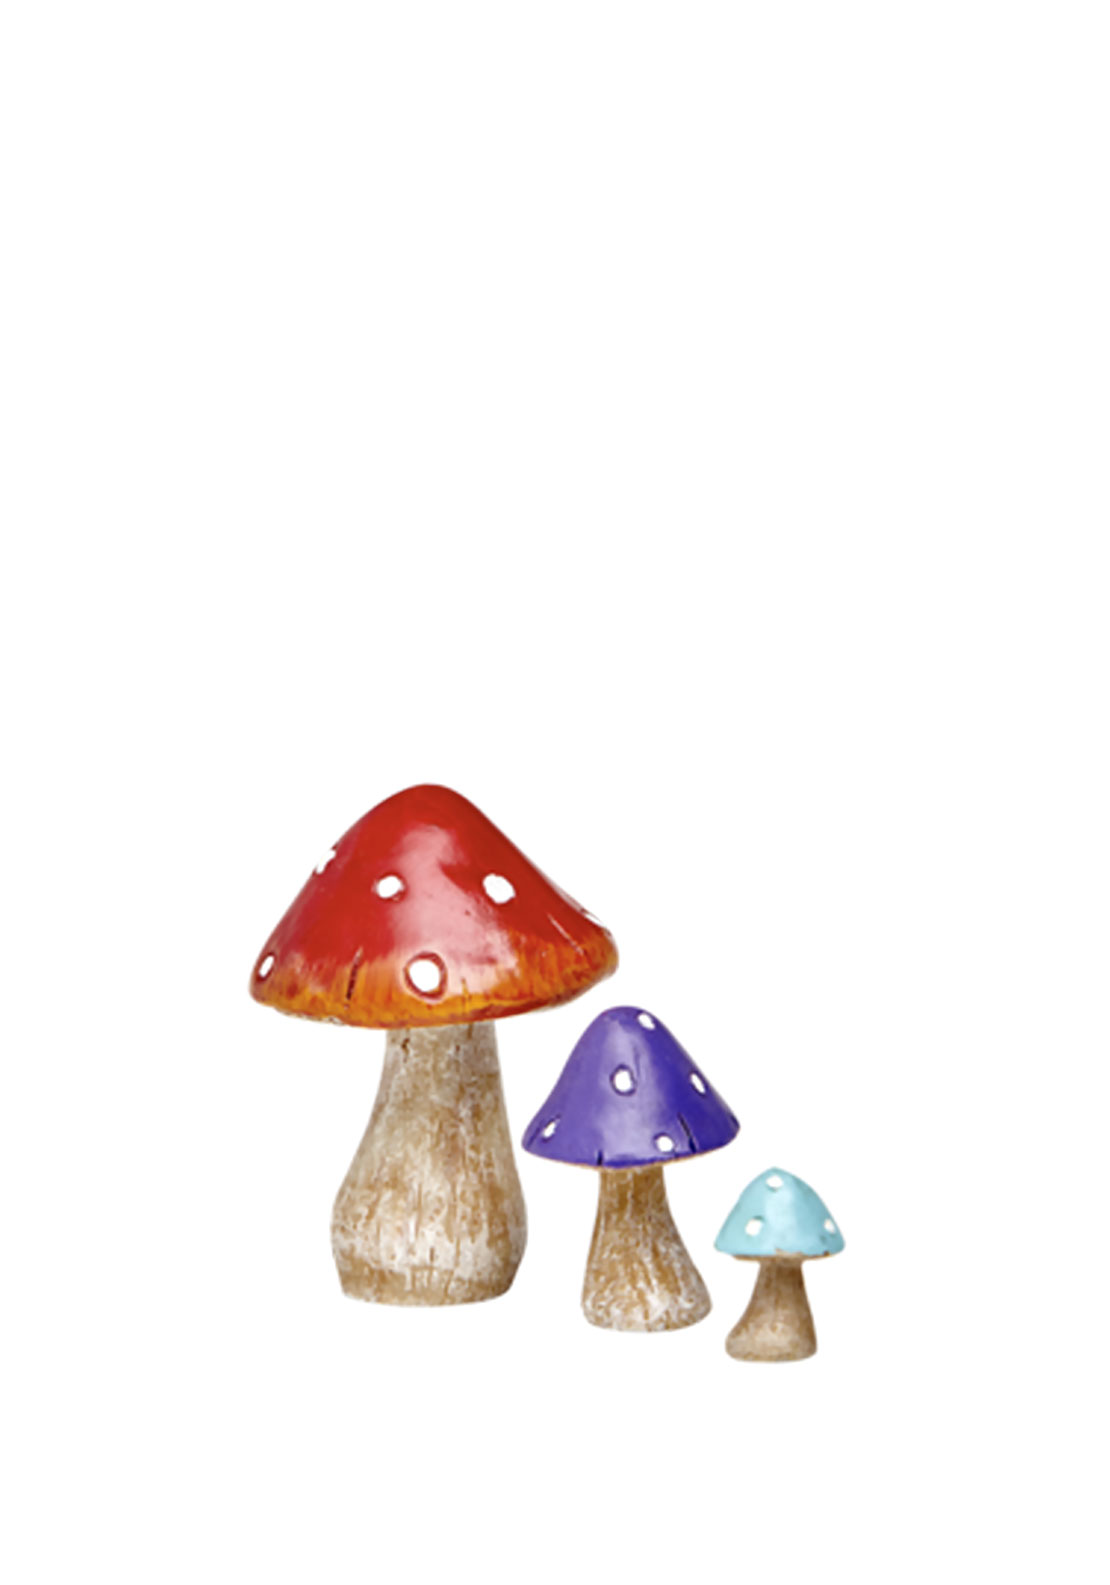 The irish fairy door company fairy toadstool set mcelhinneys for The irish fairy door company facebook